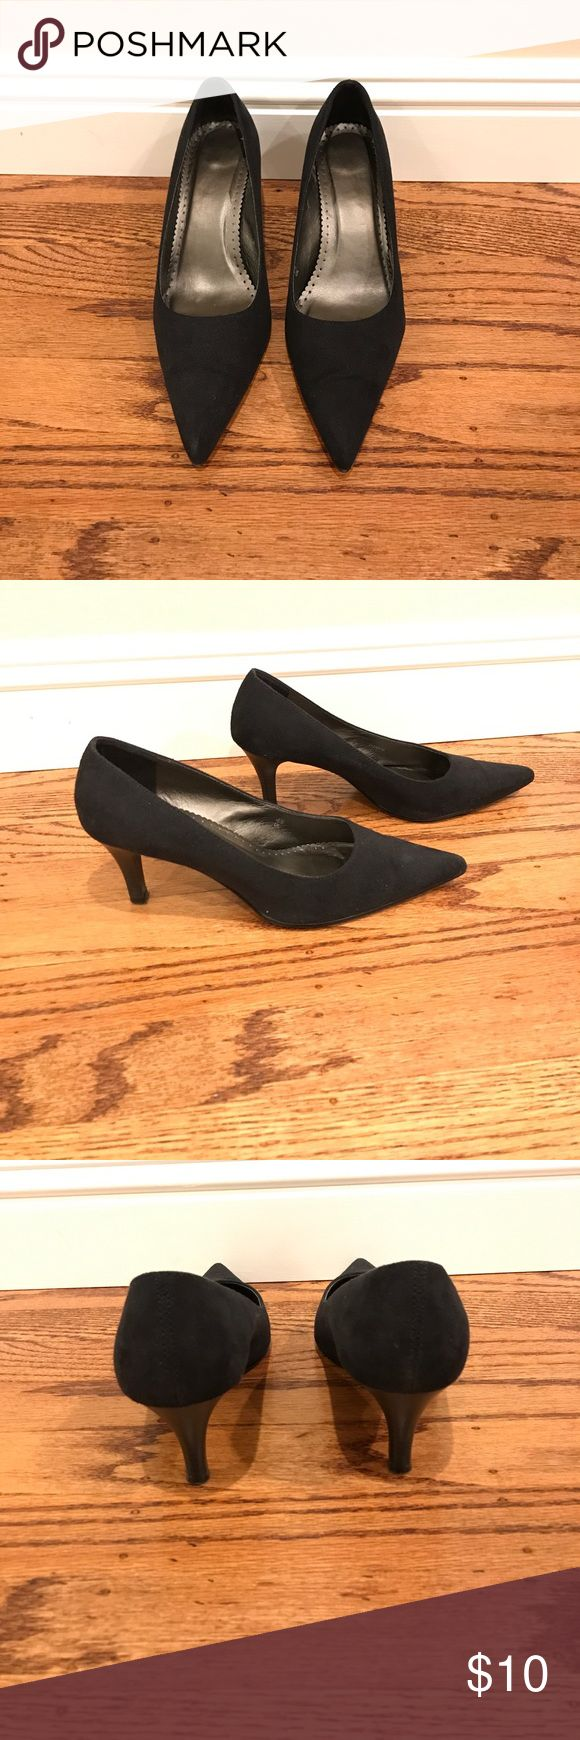 Marks&Spencer black suede stilettos Barely worn classic black suede stilettos with 2 inch kitten heels in size 7.5. They are super comfortable for any occasions. No trade, bundle up to save 15% and shipping! Marks&Spencer Shoes Heels